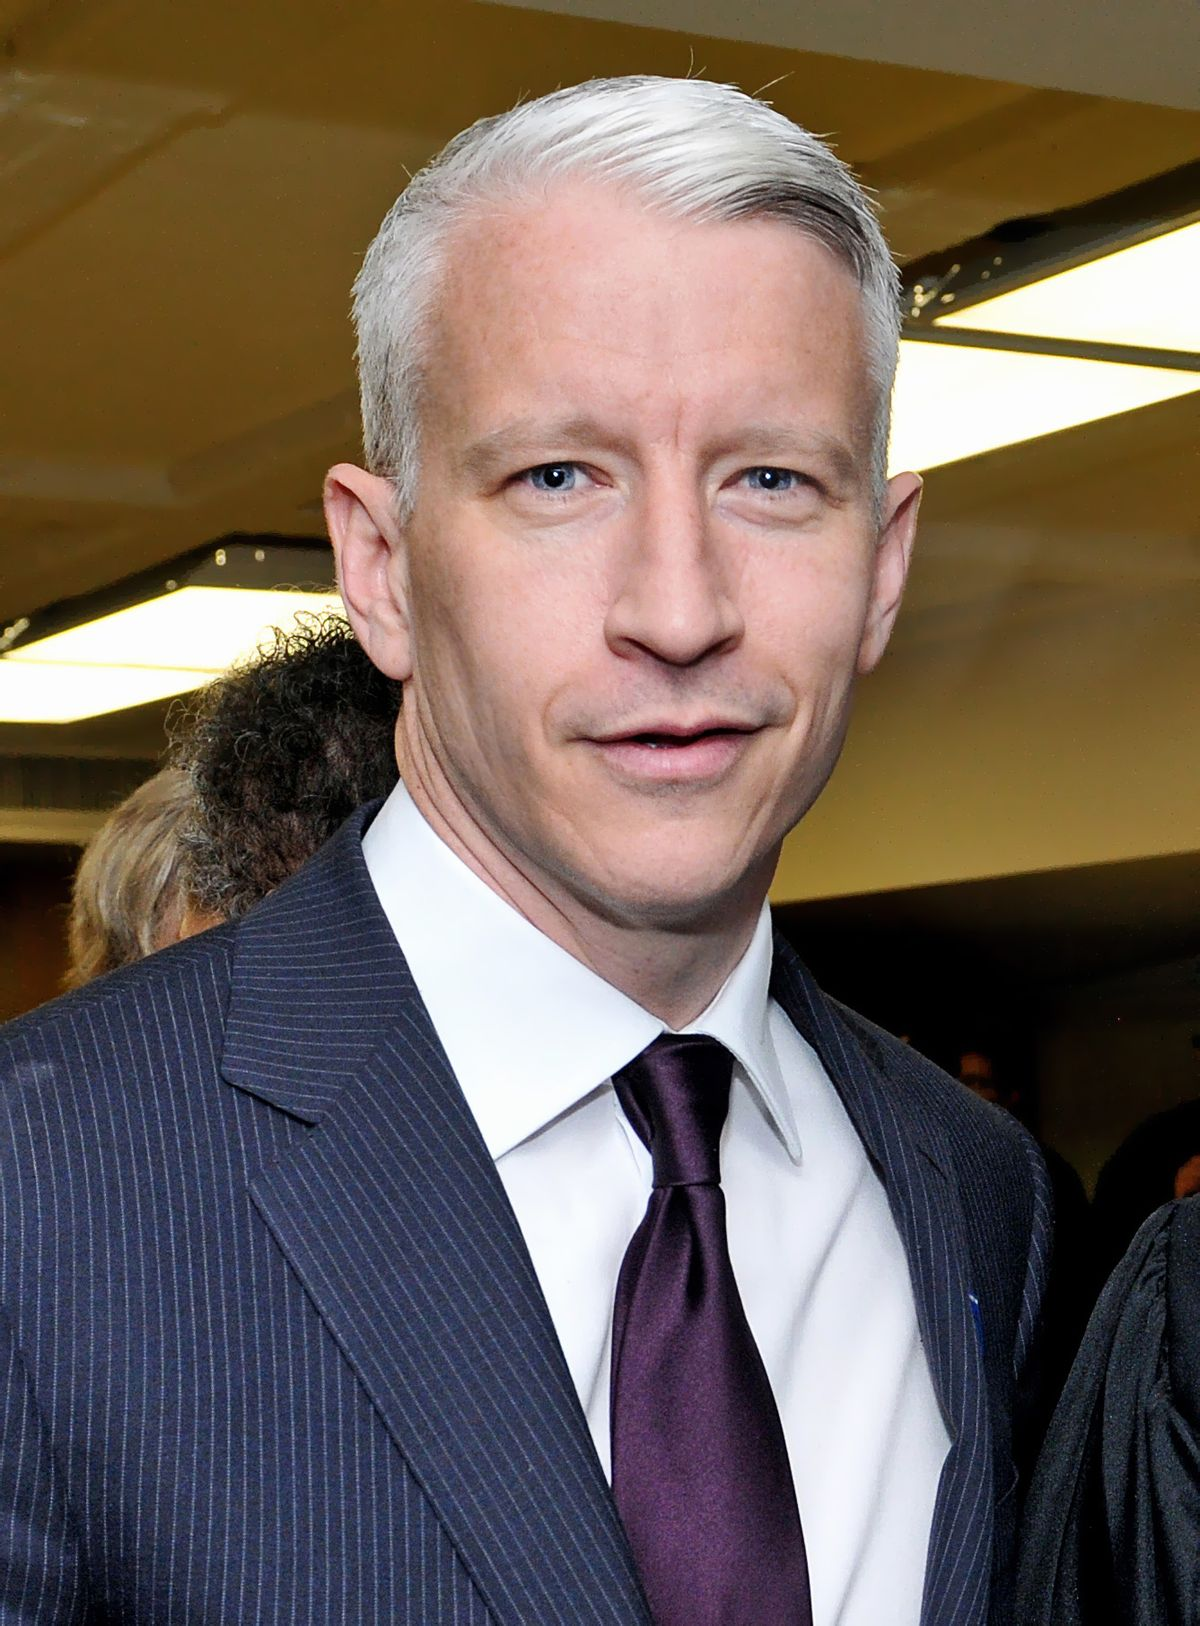 5 Times Anderson Cooper Said Exactly What We're All Thinking About President Trump